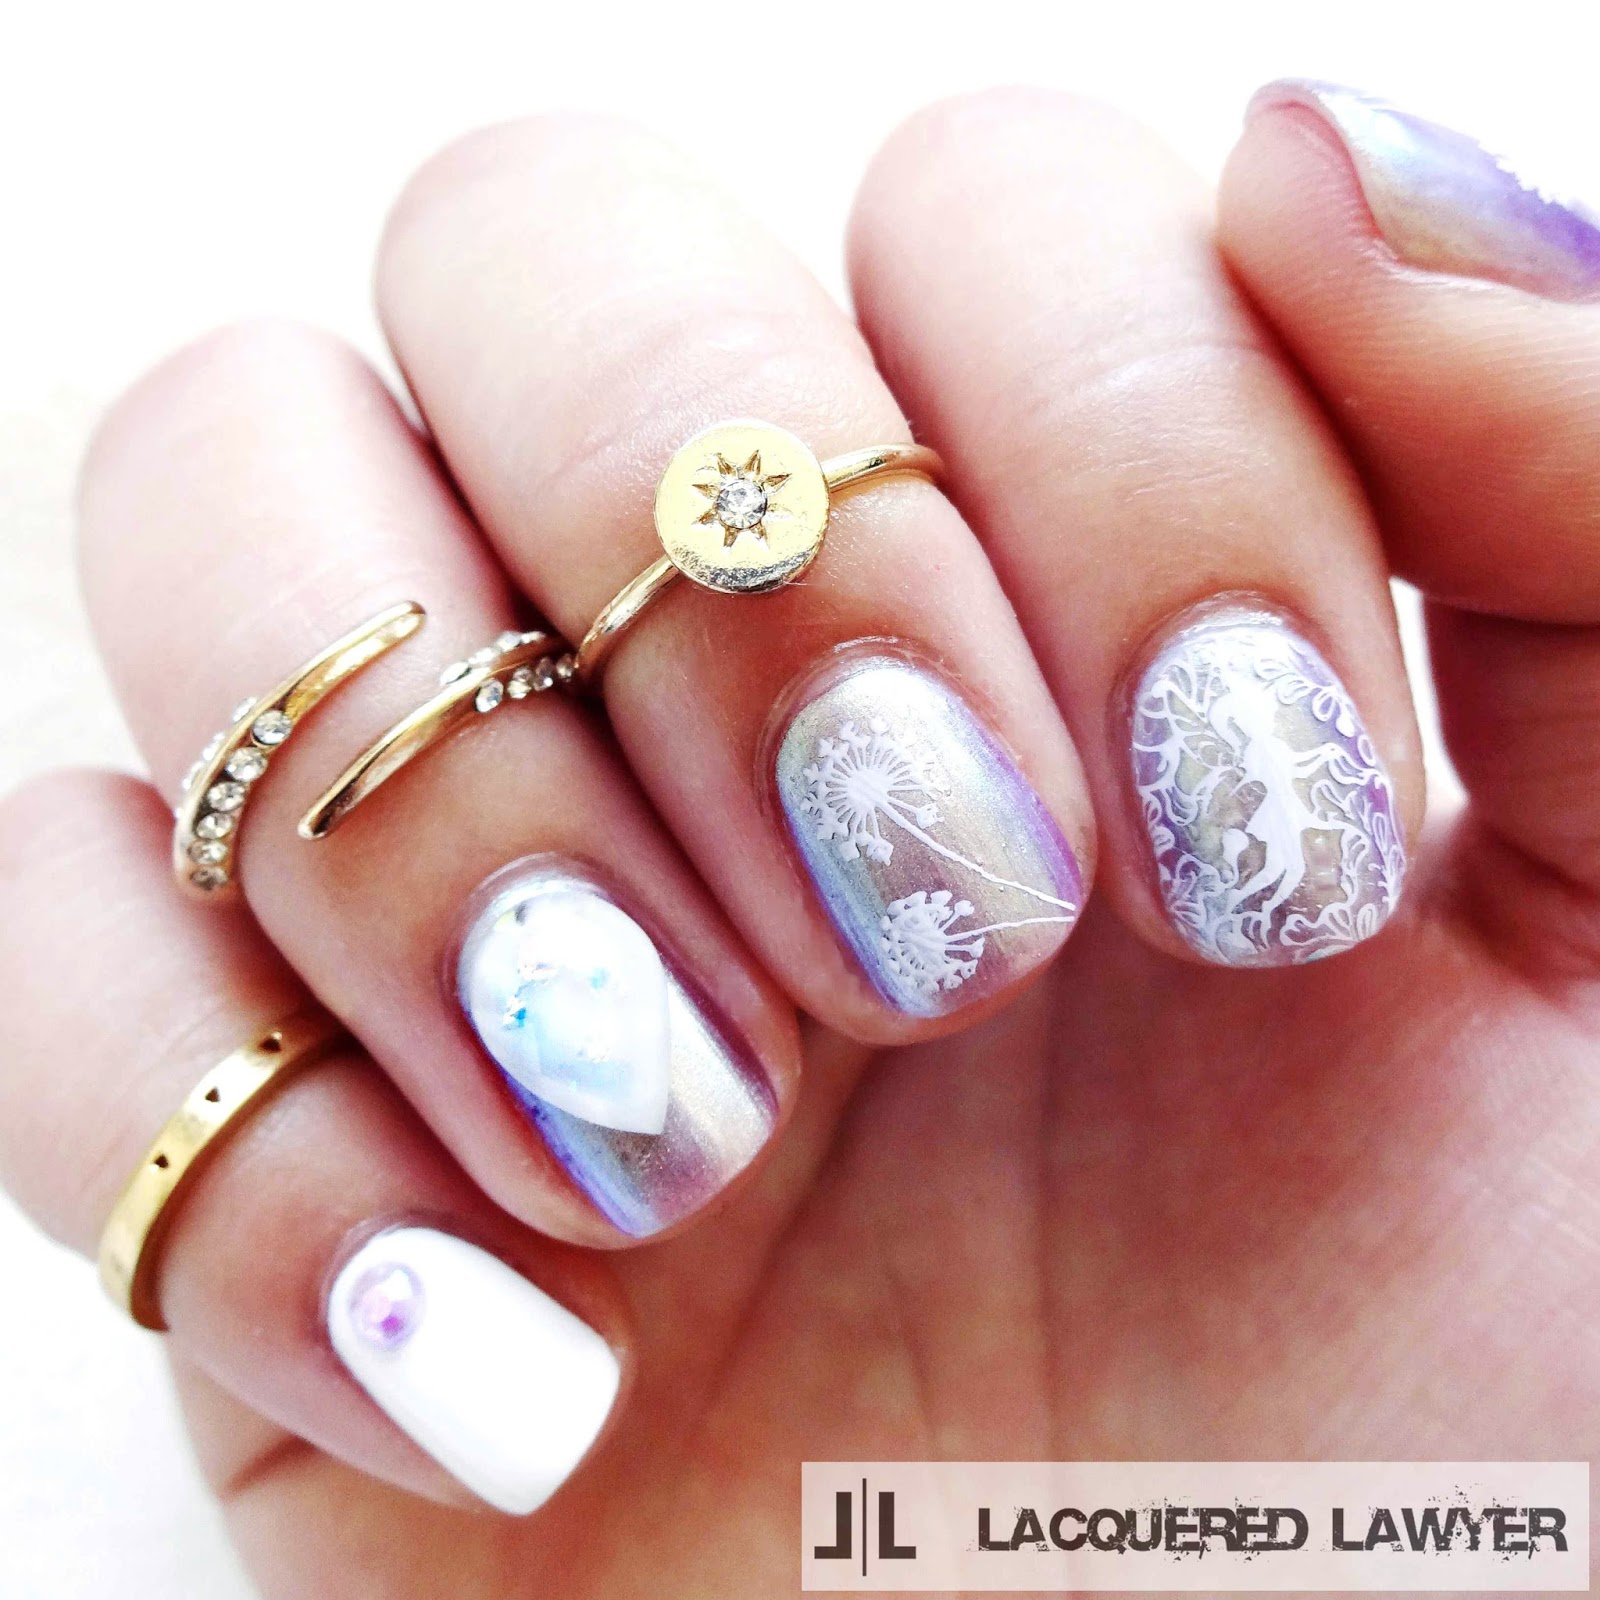 Lacquered Lawyer | Nail Art Blog: May 2015